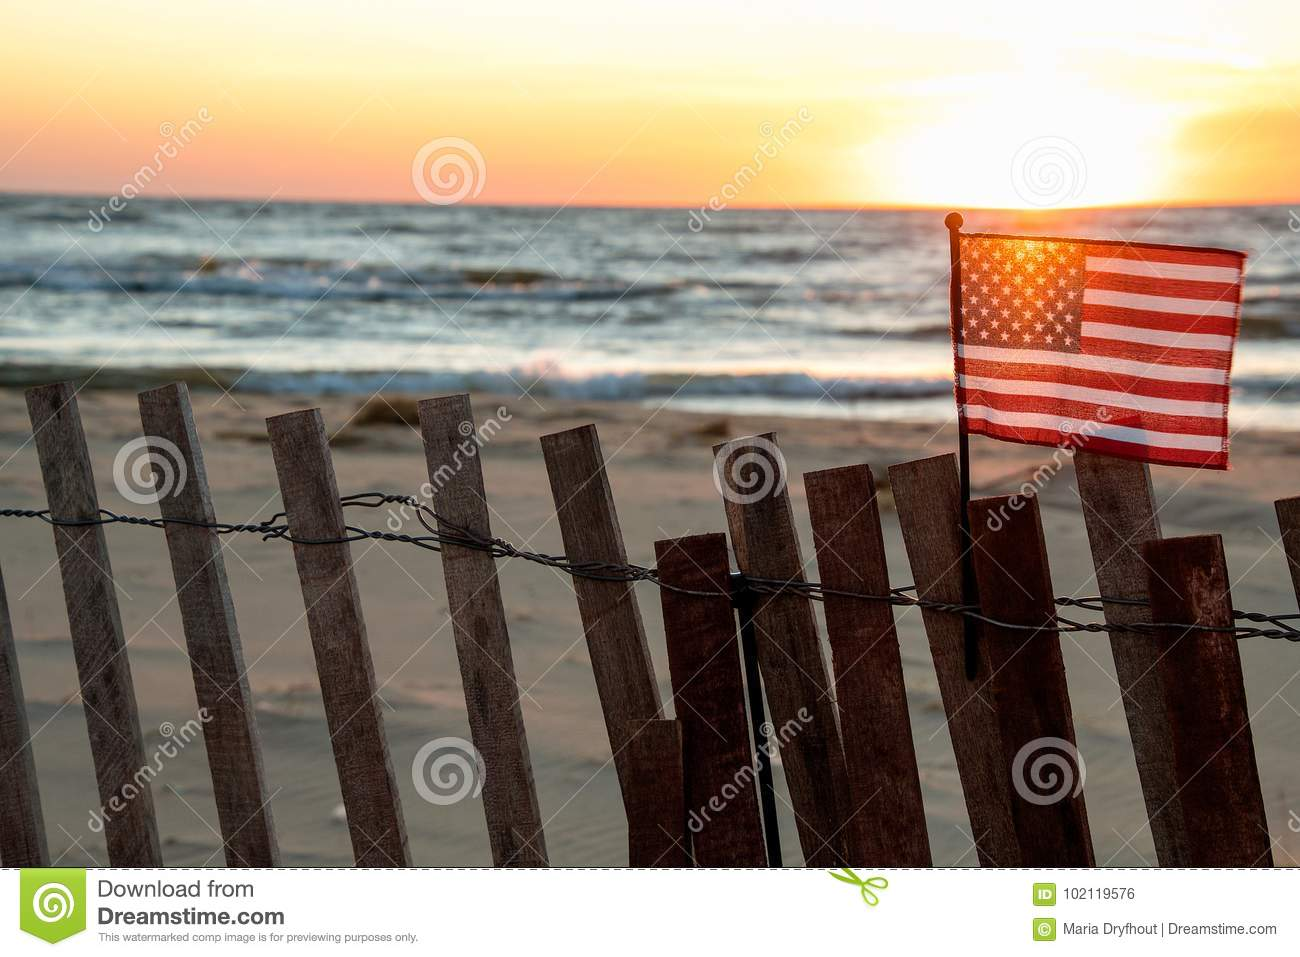 American flag on beach fence with sunset glow